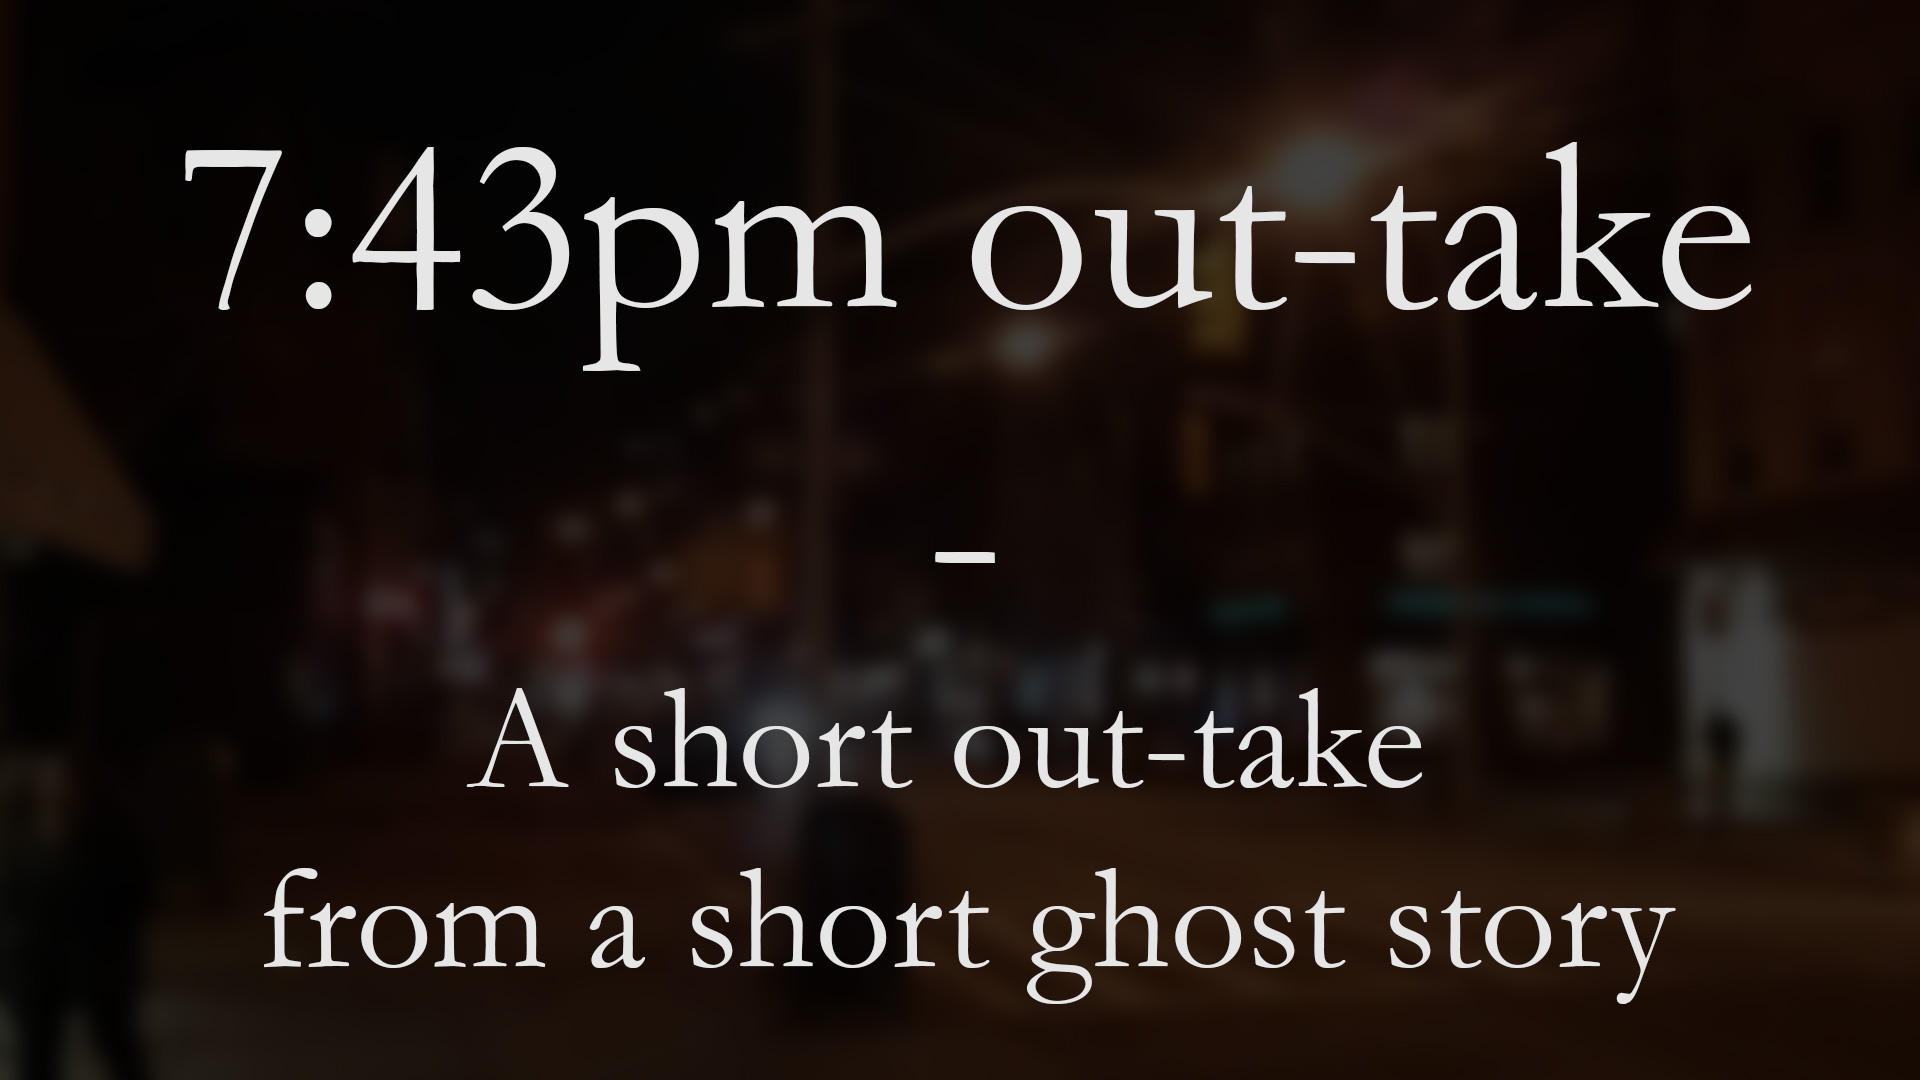 7:43pm Out-take: a short out-take from a short ghost story